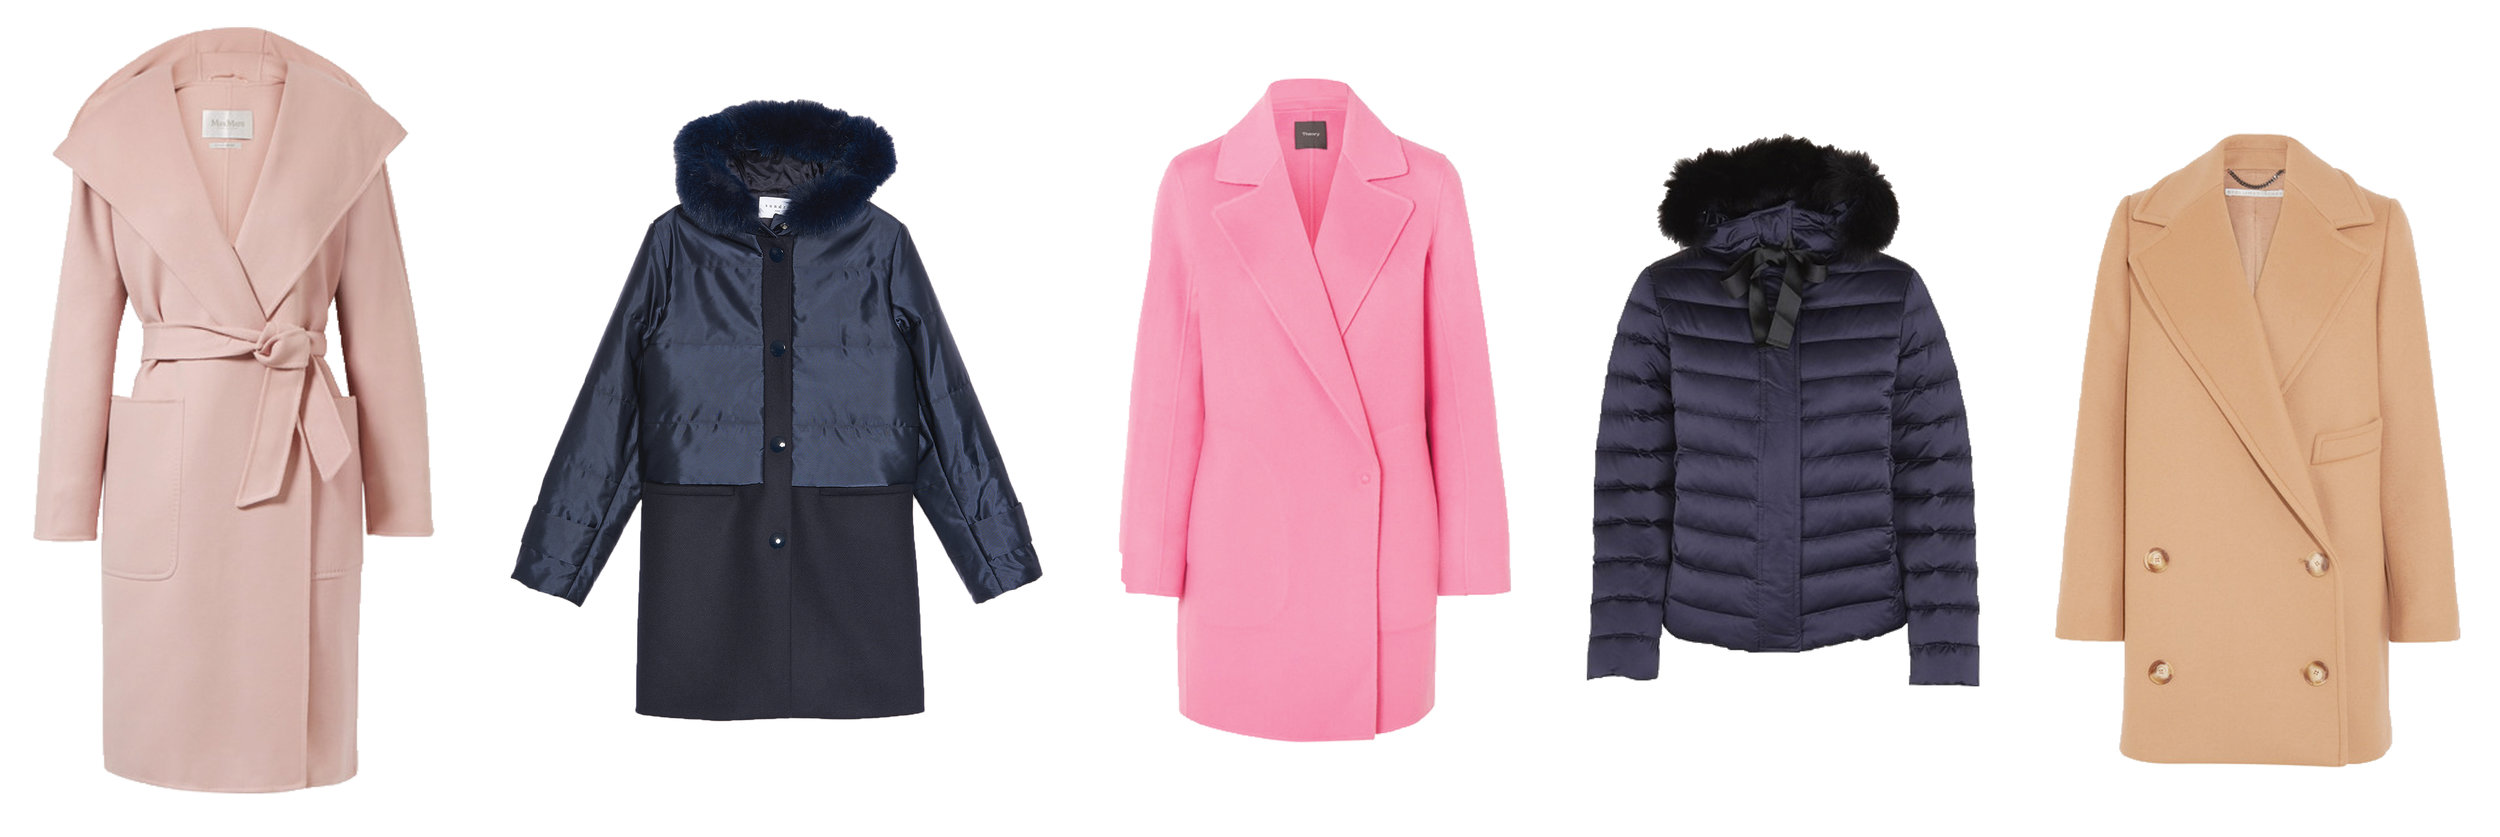 From left, Max Mara Wool and Cashmere  Coat  | Sandro  Coat  with Fur | Theory Wool and Cashmere  Coat  | Sandro Quilted  Jacket  with Fur | Stella McCartney Edith Double-Breasted  Coat